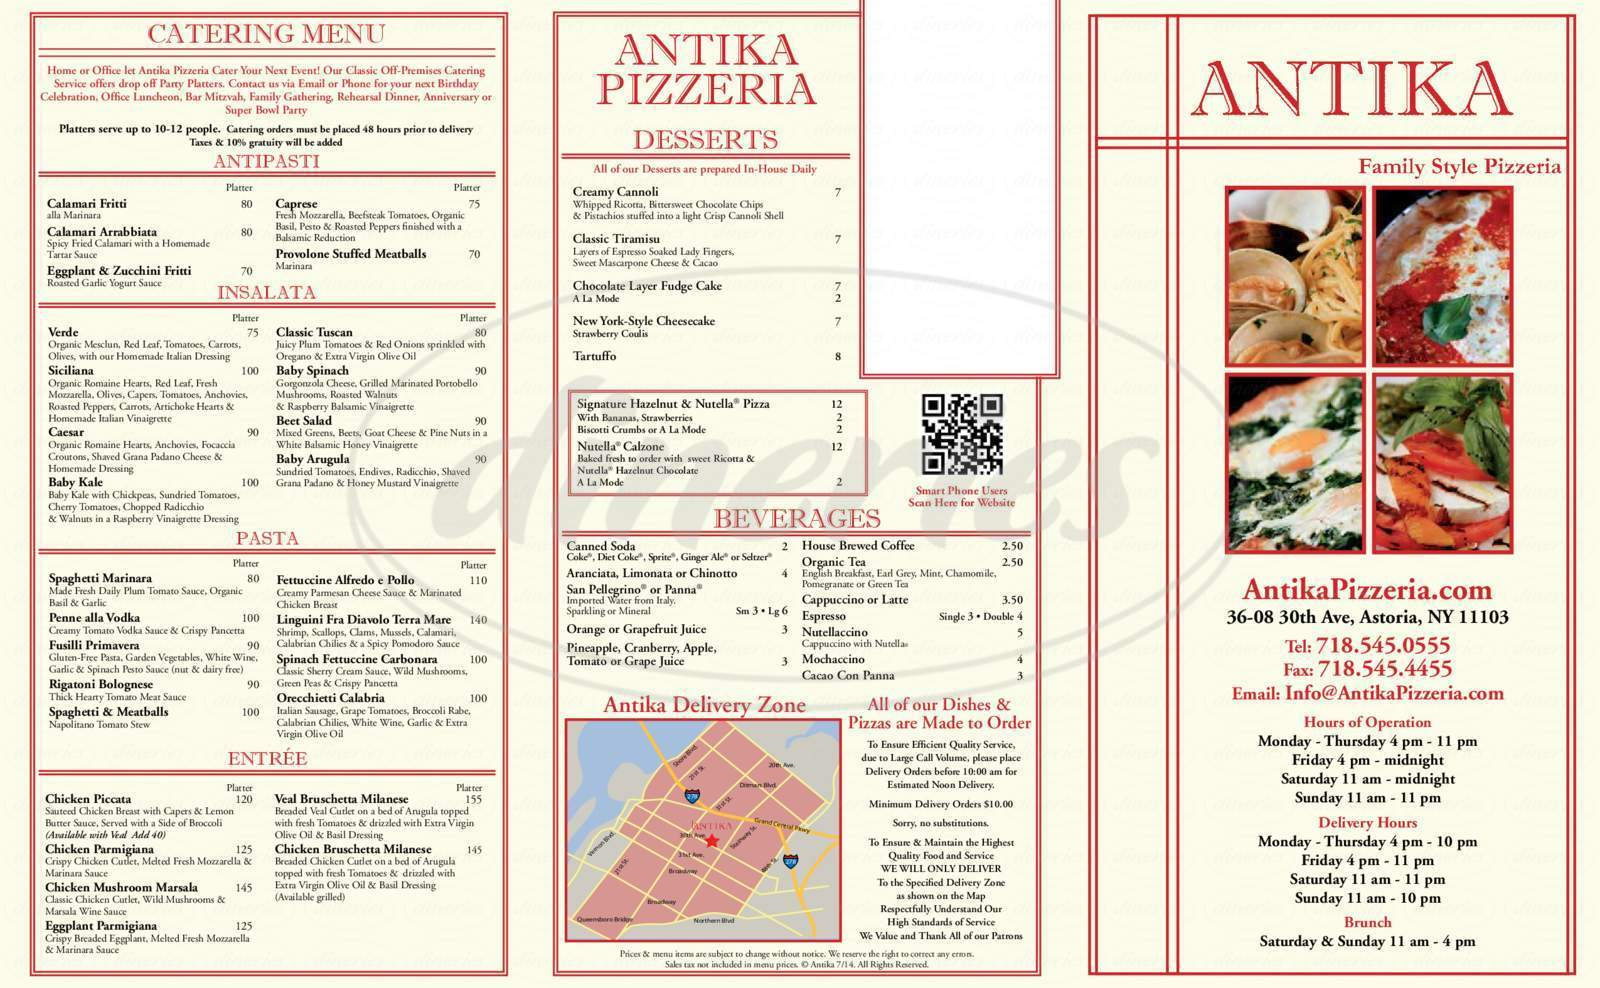 menu for Antika Pizzeria